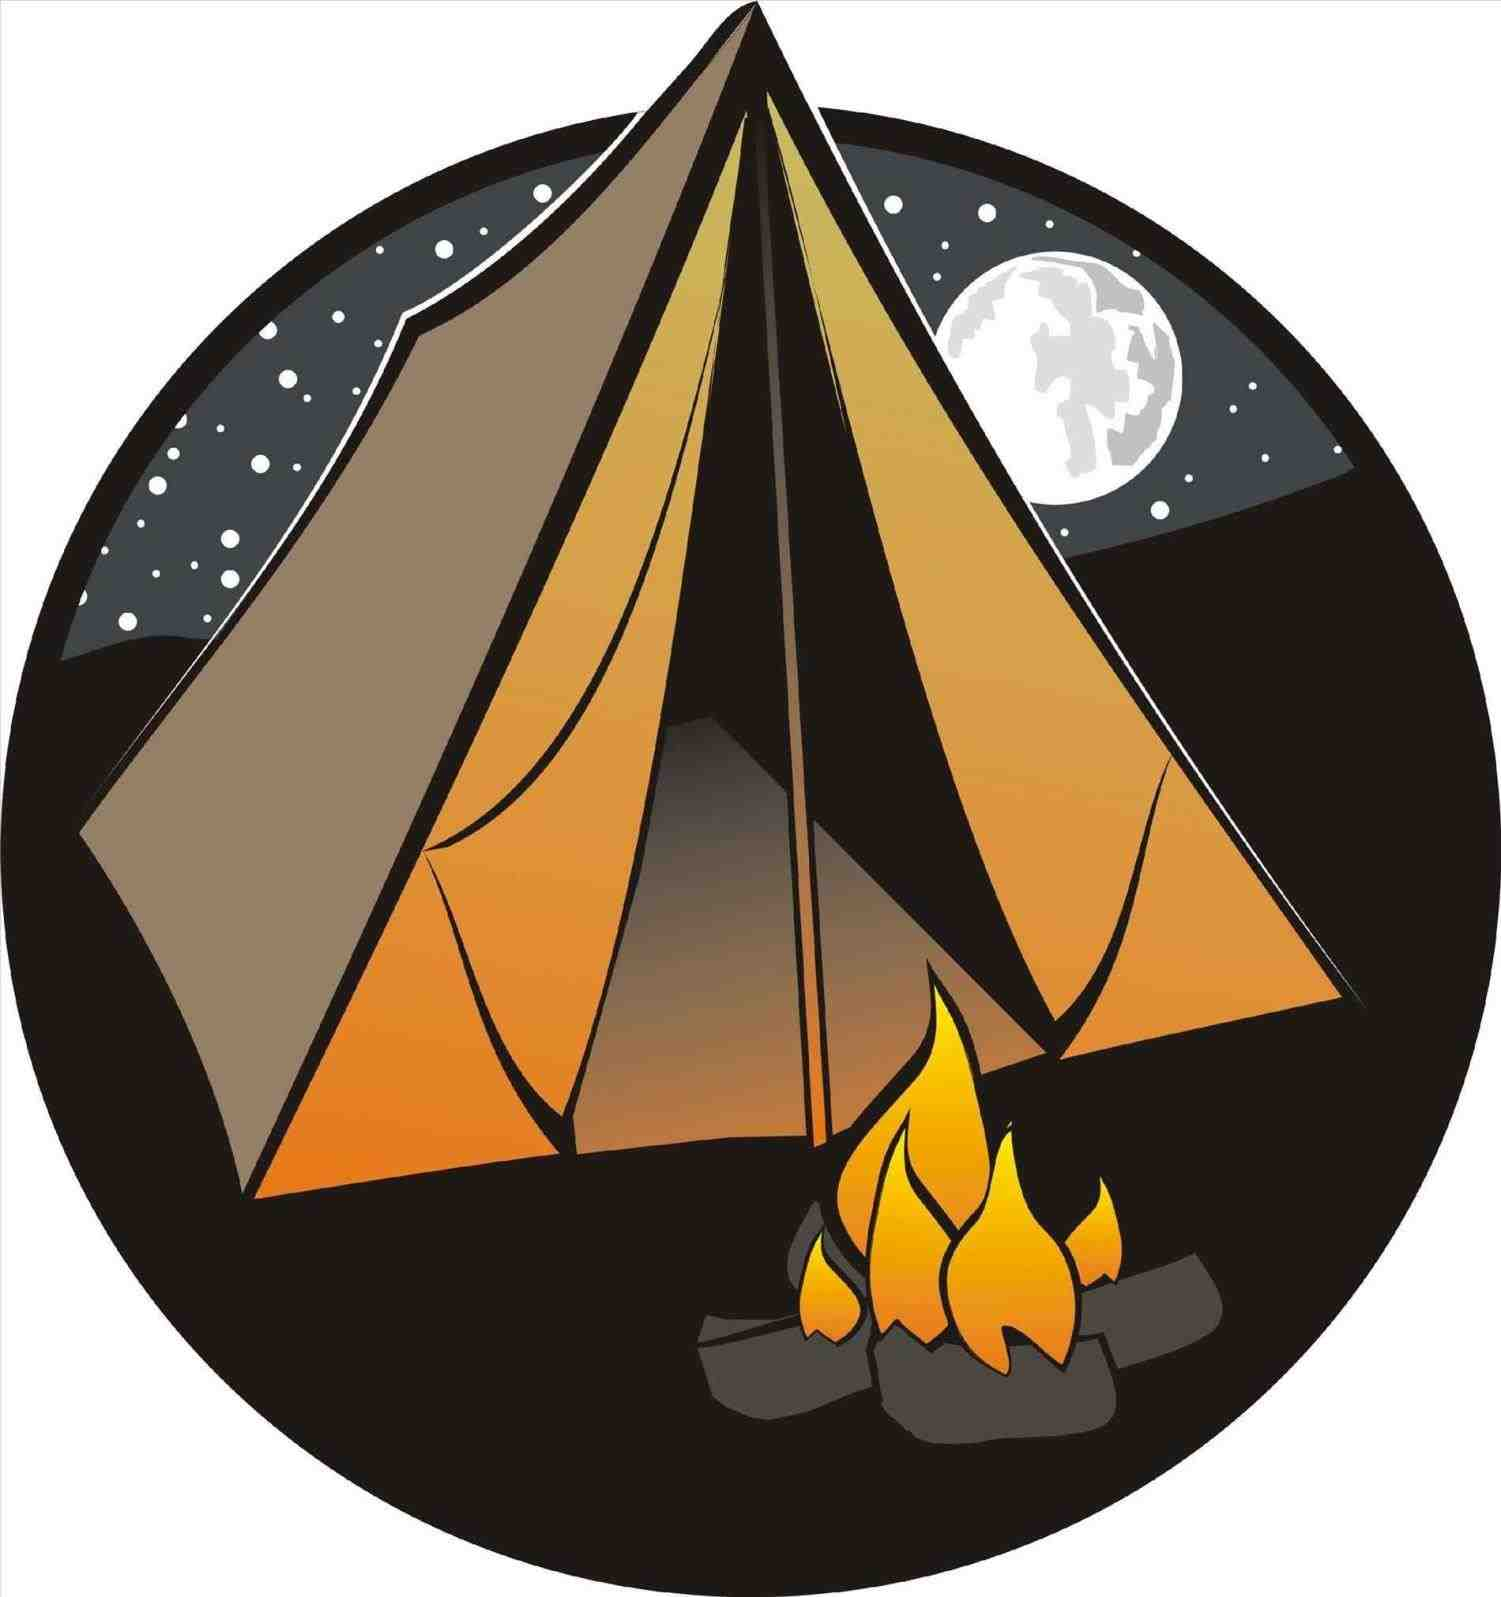 Alltripgo png transparent image. Campfire clipart camp fire